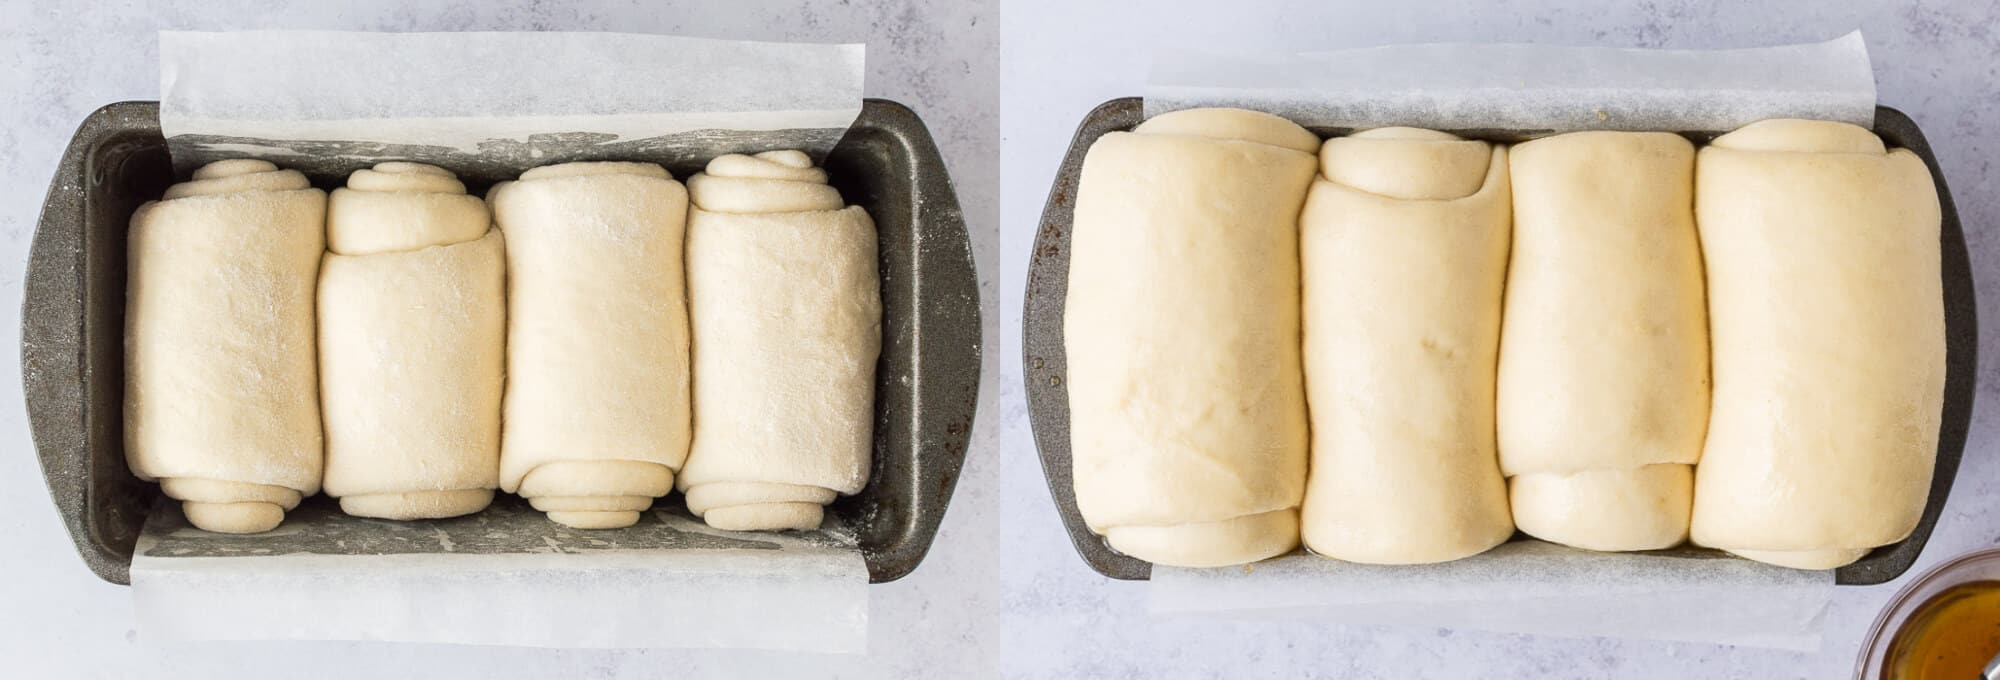 before and after of the rising loaf